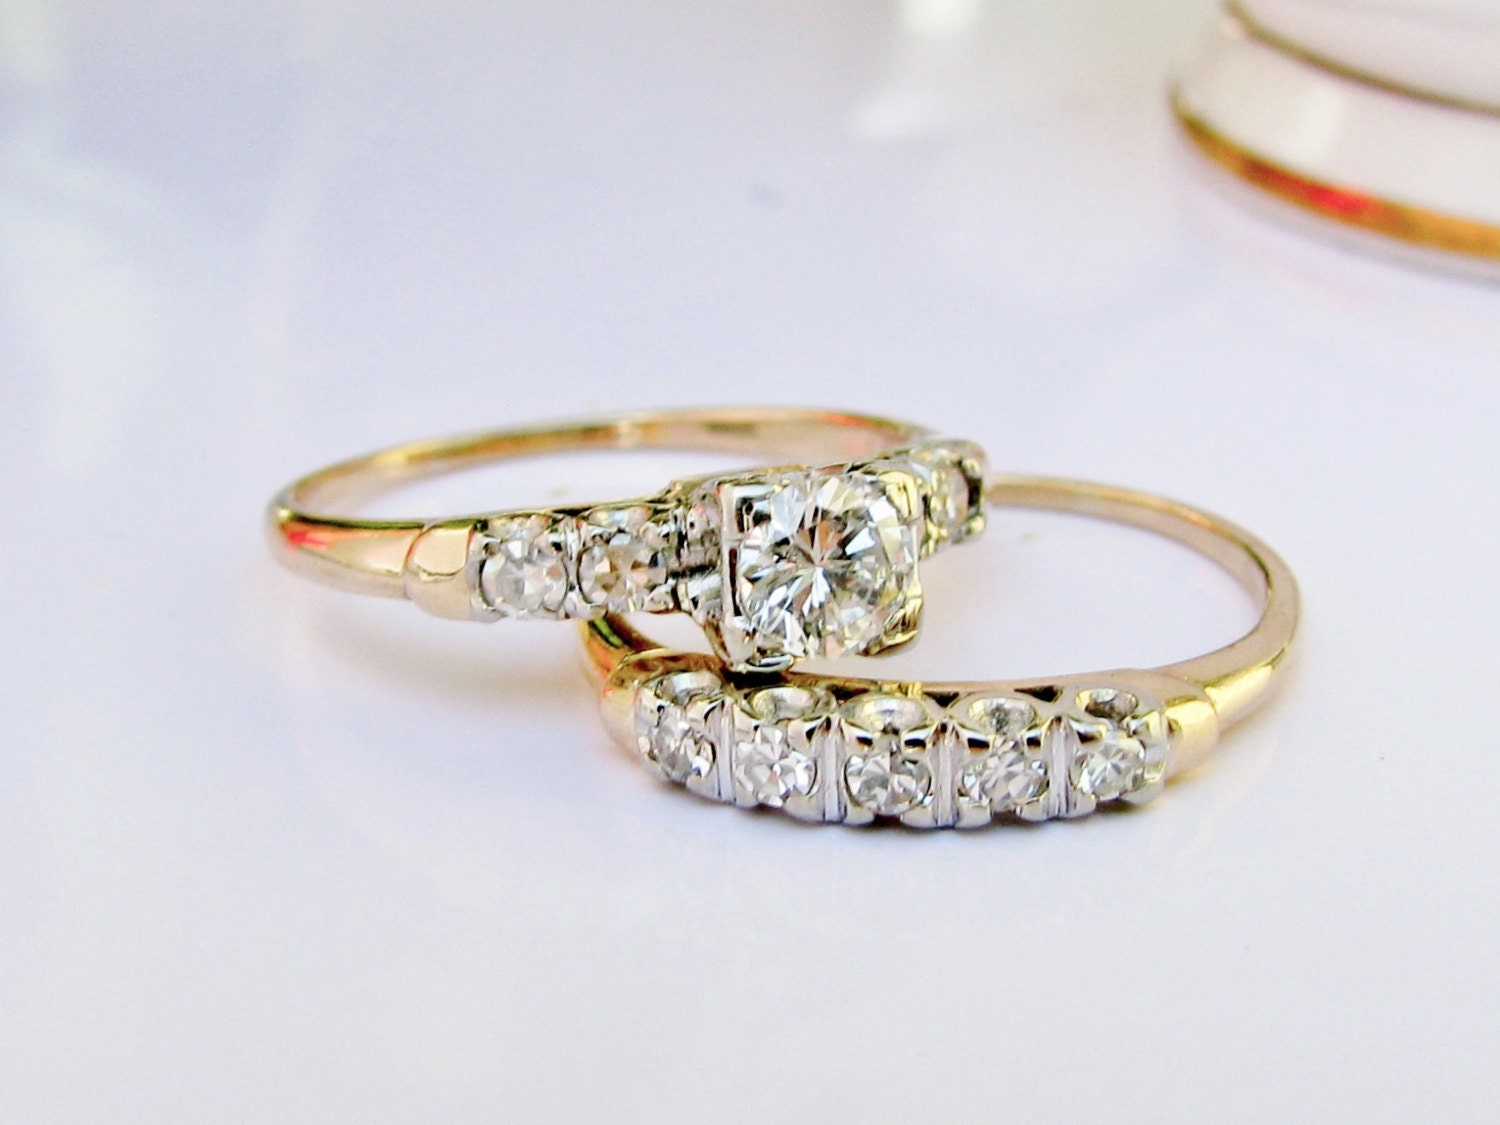 Vintage engagement ring diamond wedding band set 14k two tone for Vintage wedding rings sets